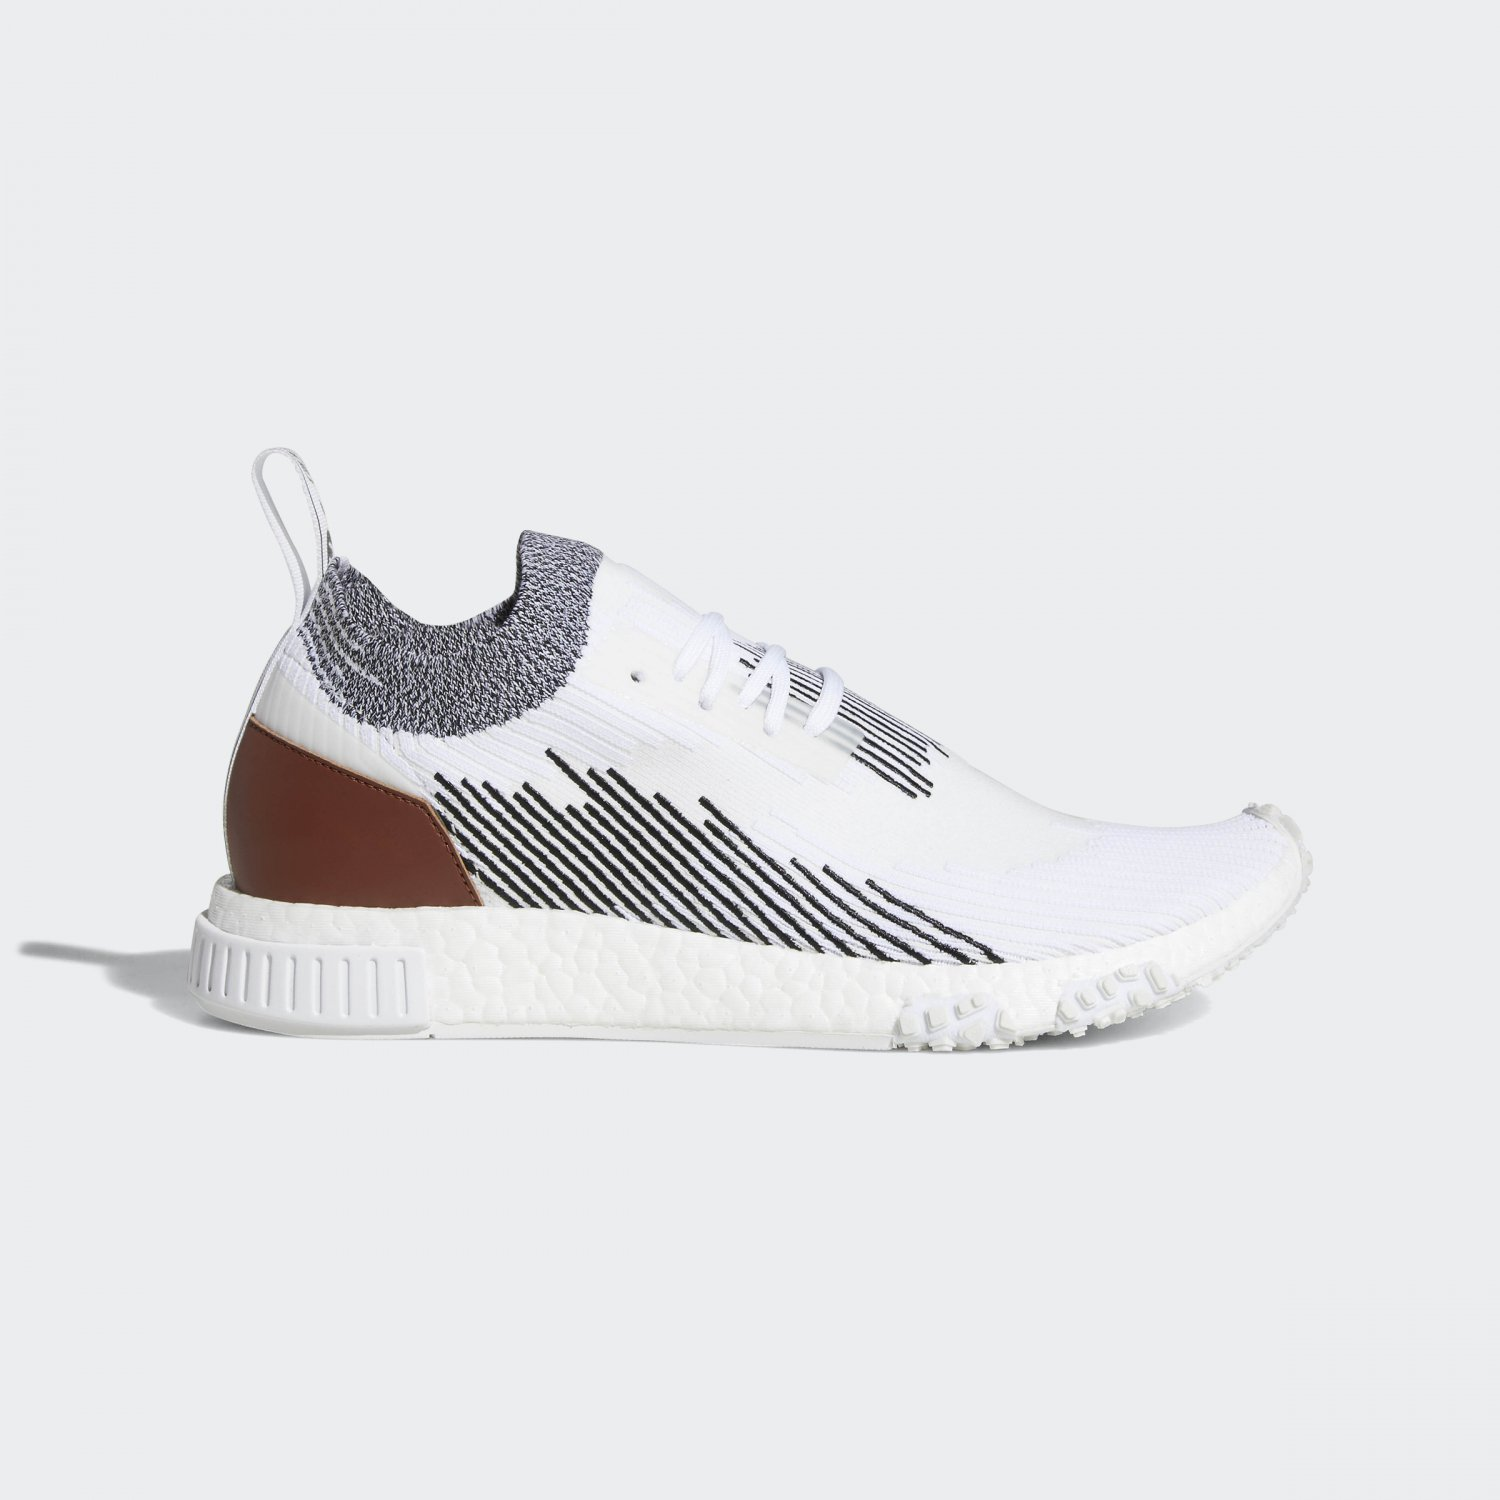 NMD Racer Whitaker Group